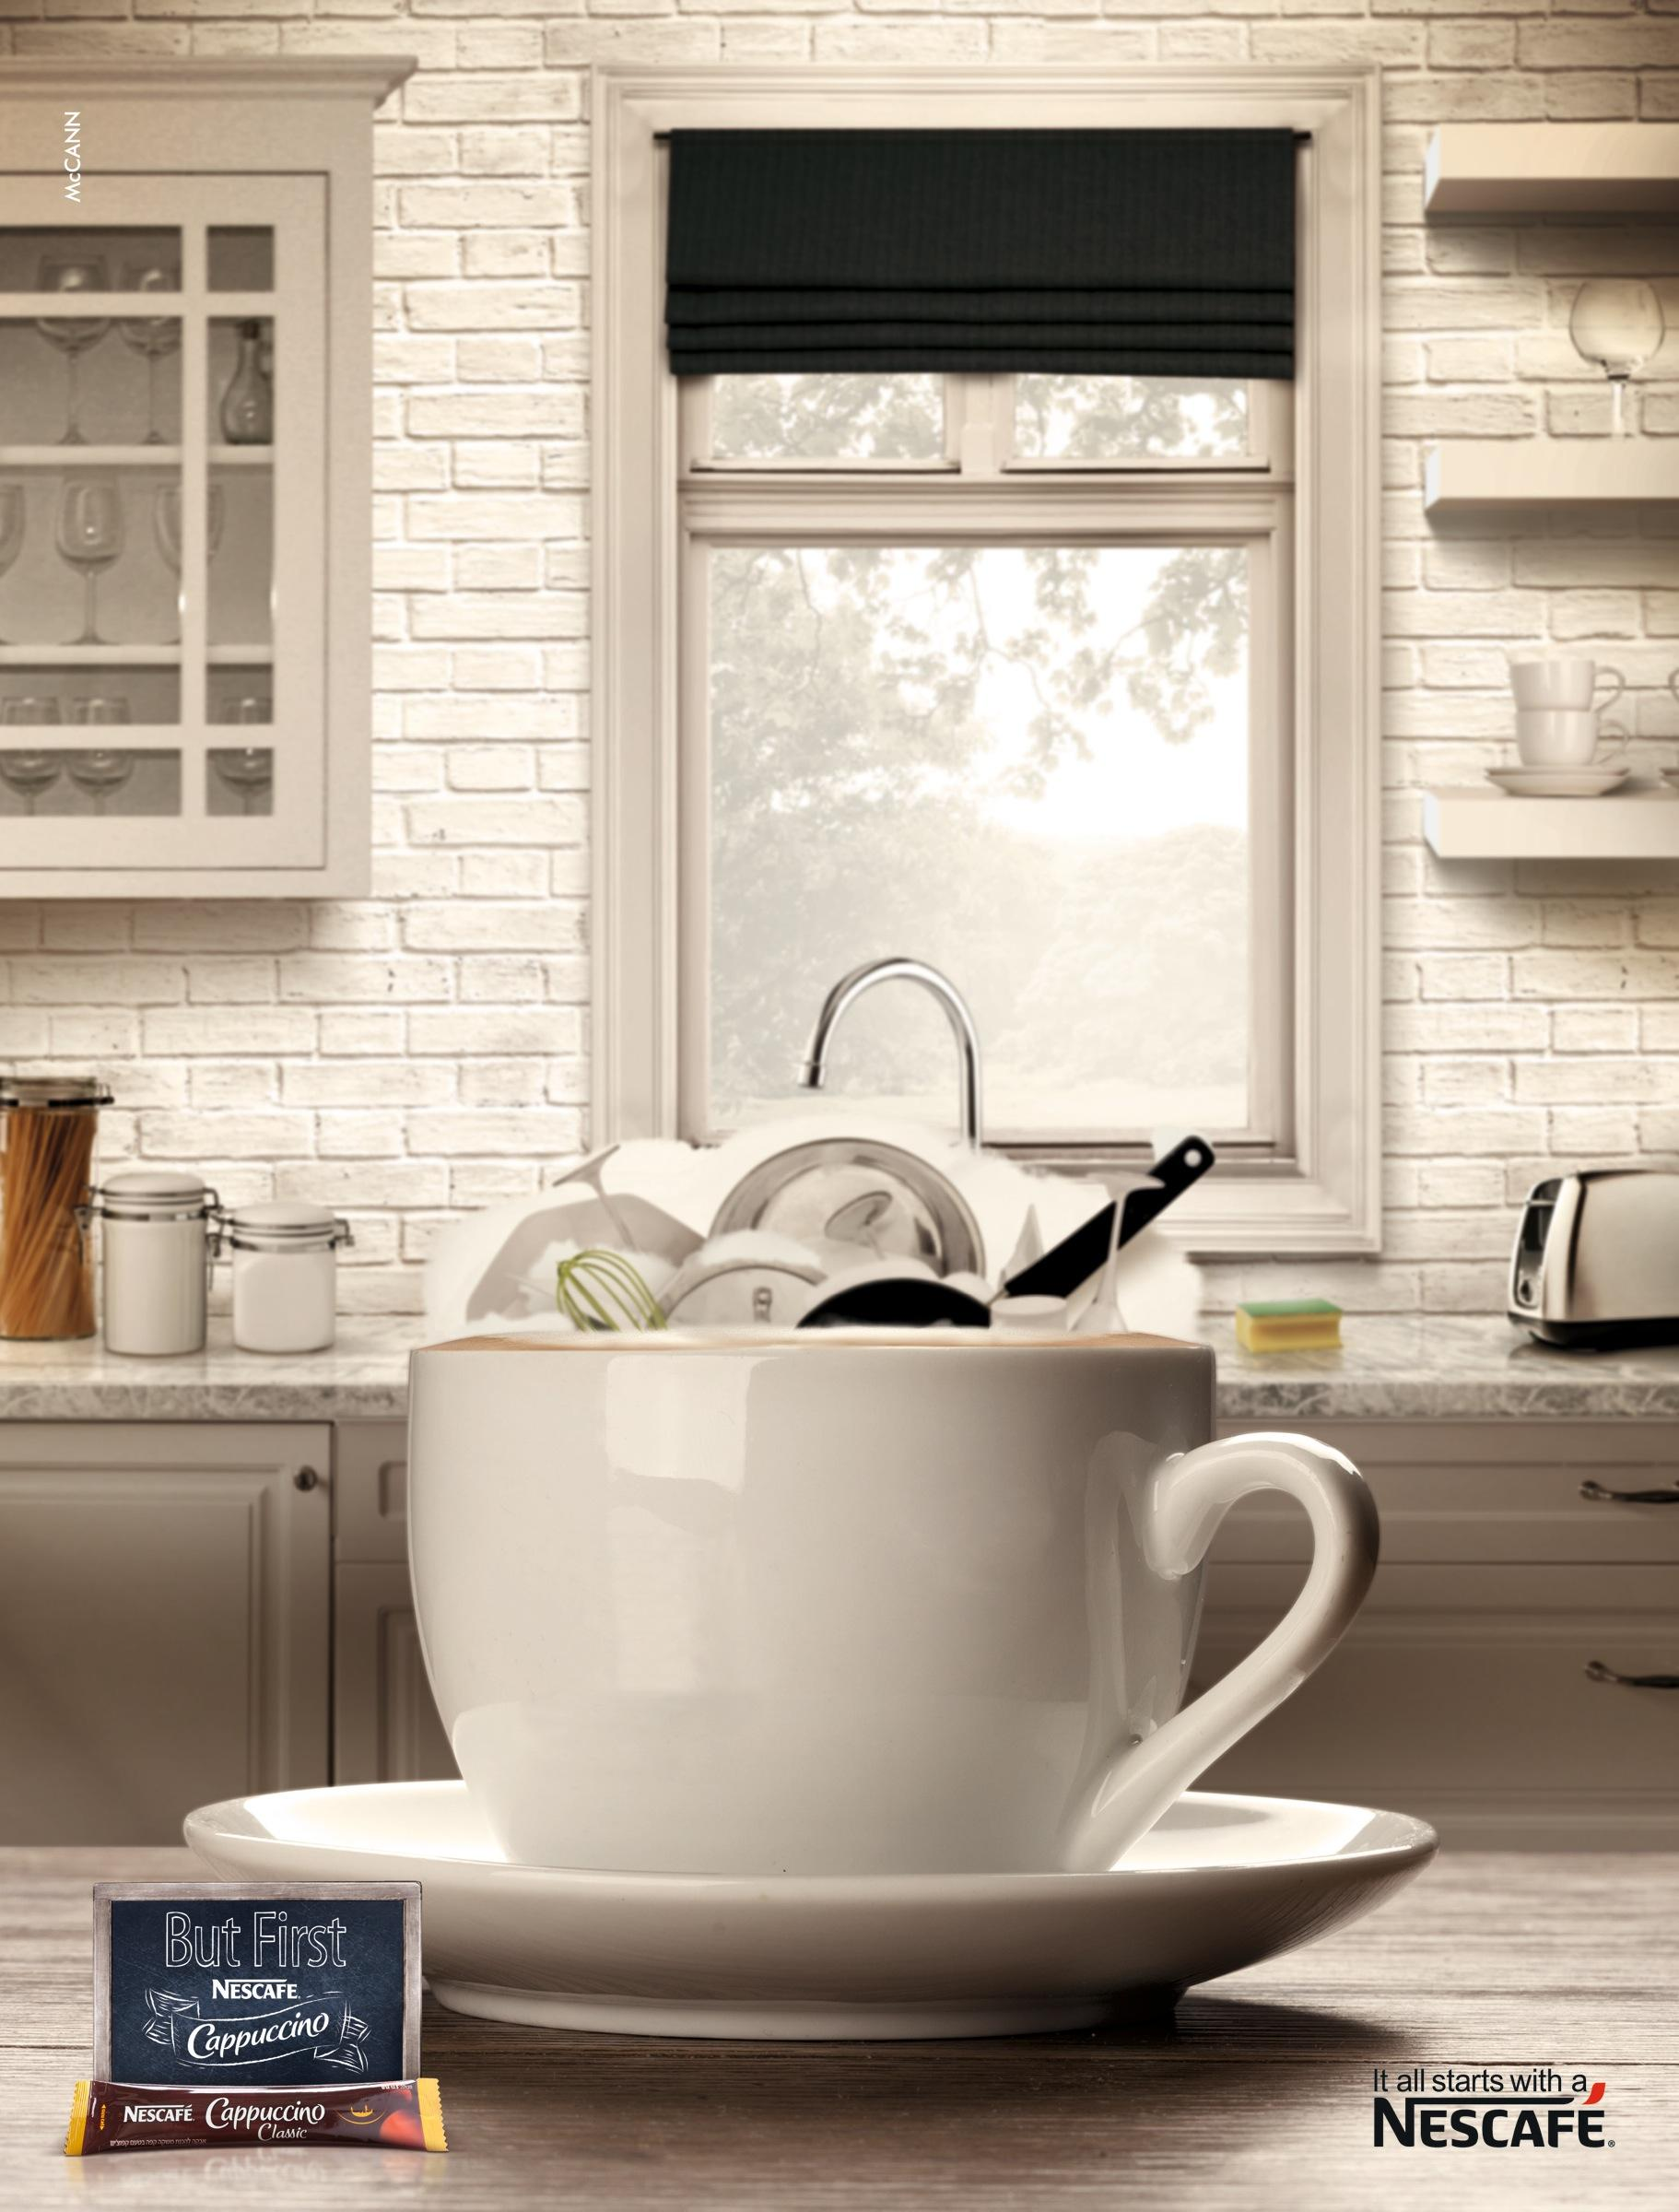 Nescafe Print Ad -  It all starts with a Nescafe